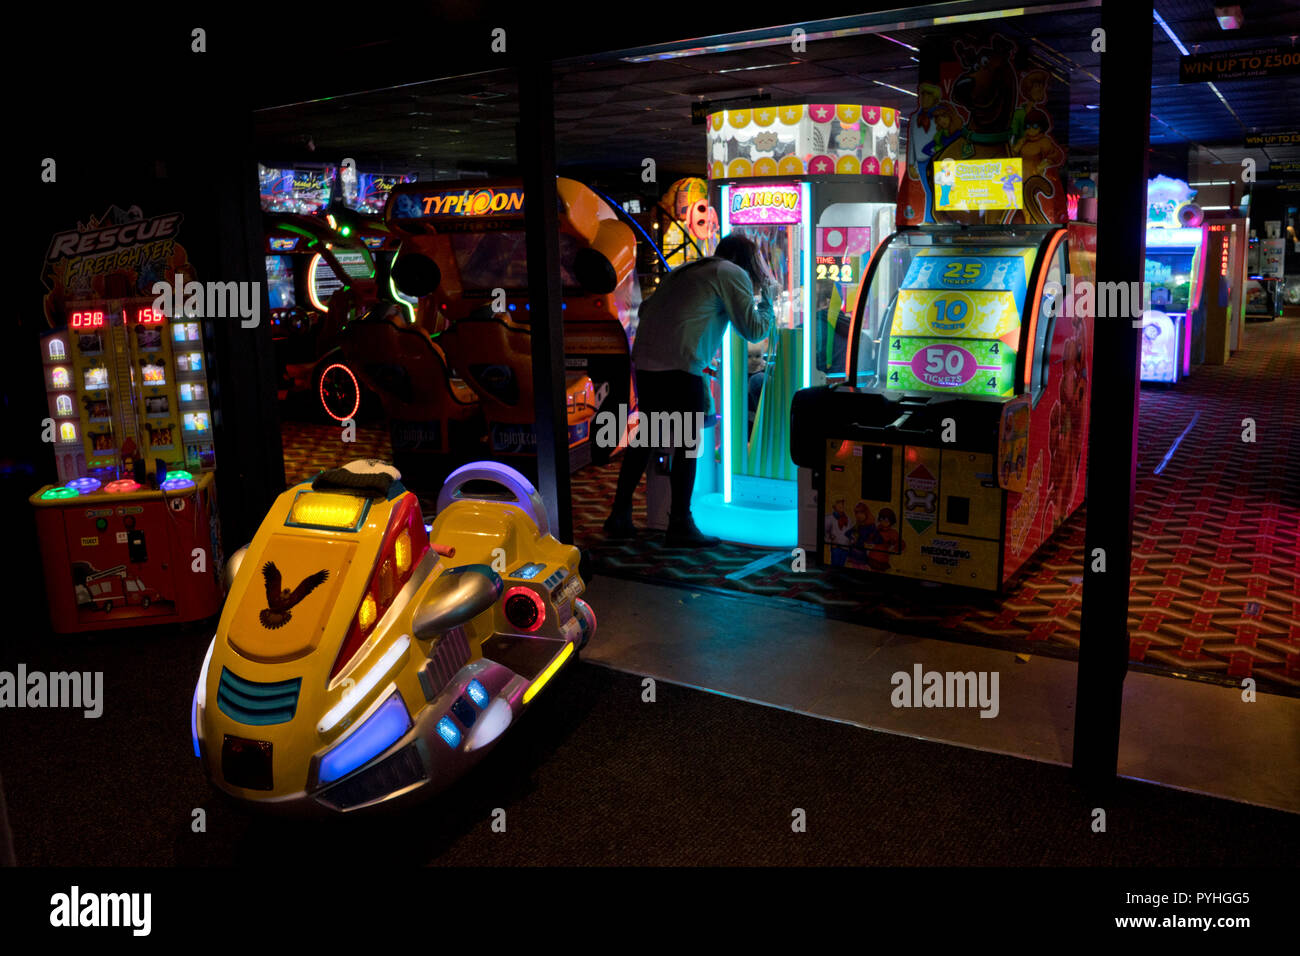 Arcade games by the pier on the seaside in Aberystwyth,Ceredigion,Wales - Stock Image